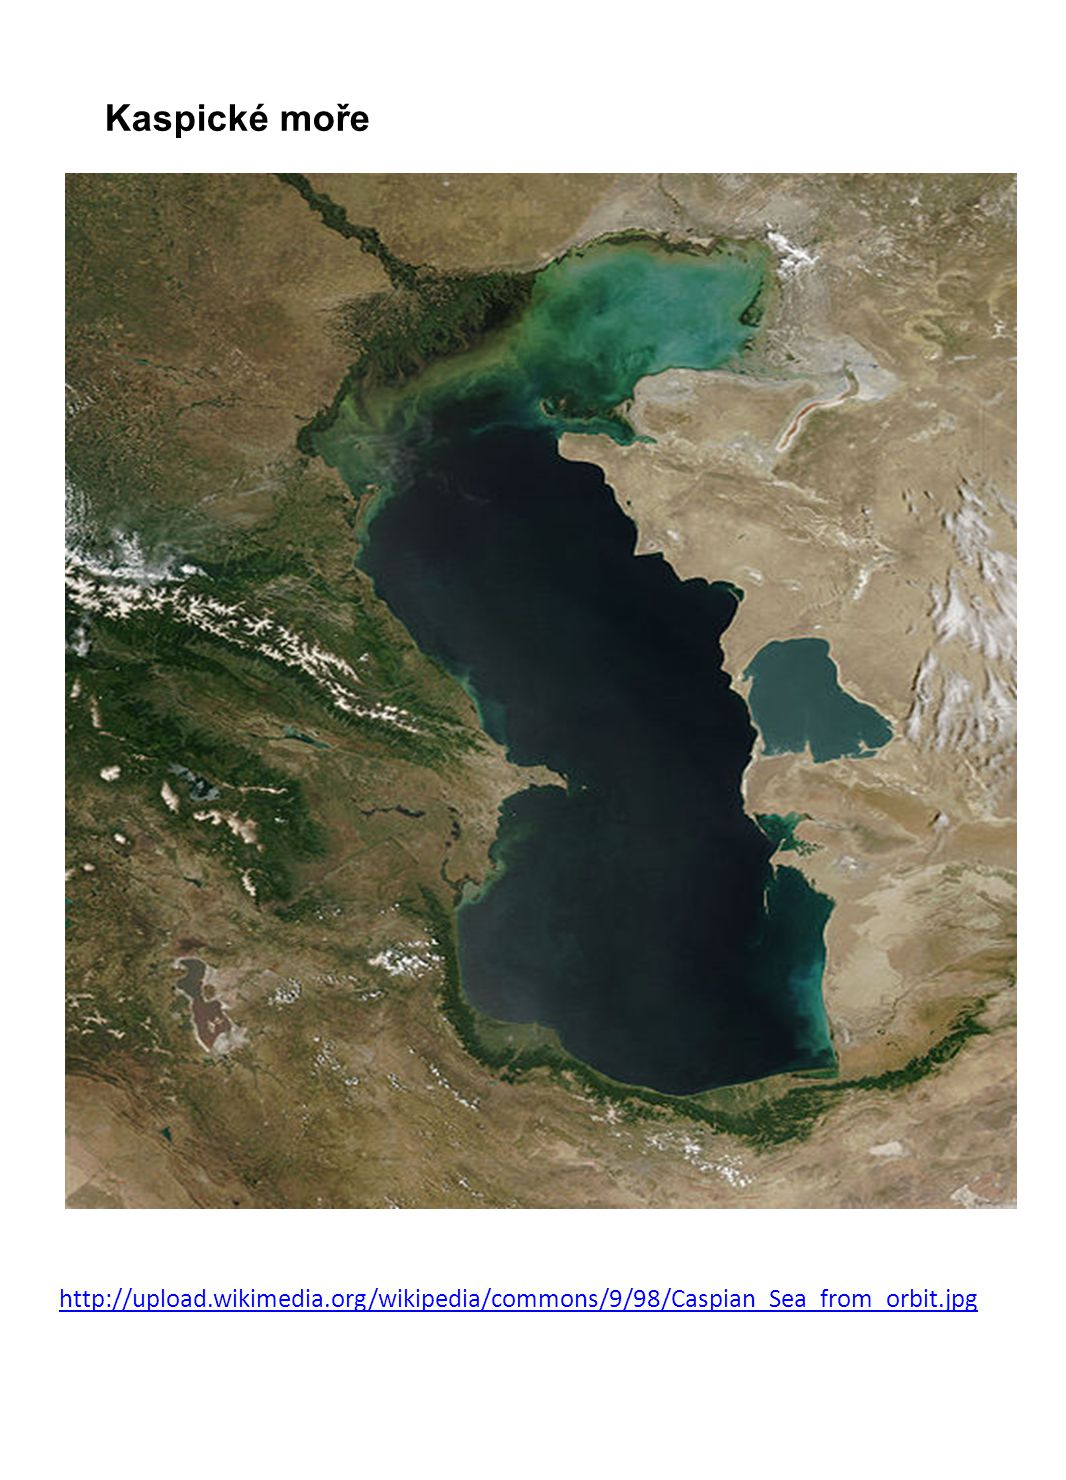 Kaspické moře http://upload.wikimedia.org/wikipedia/commons/9/98/Caspian_Sea_from_orbit.jpg